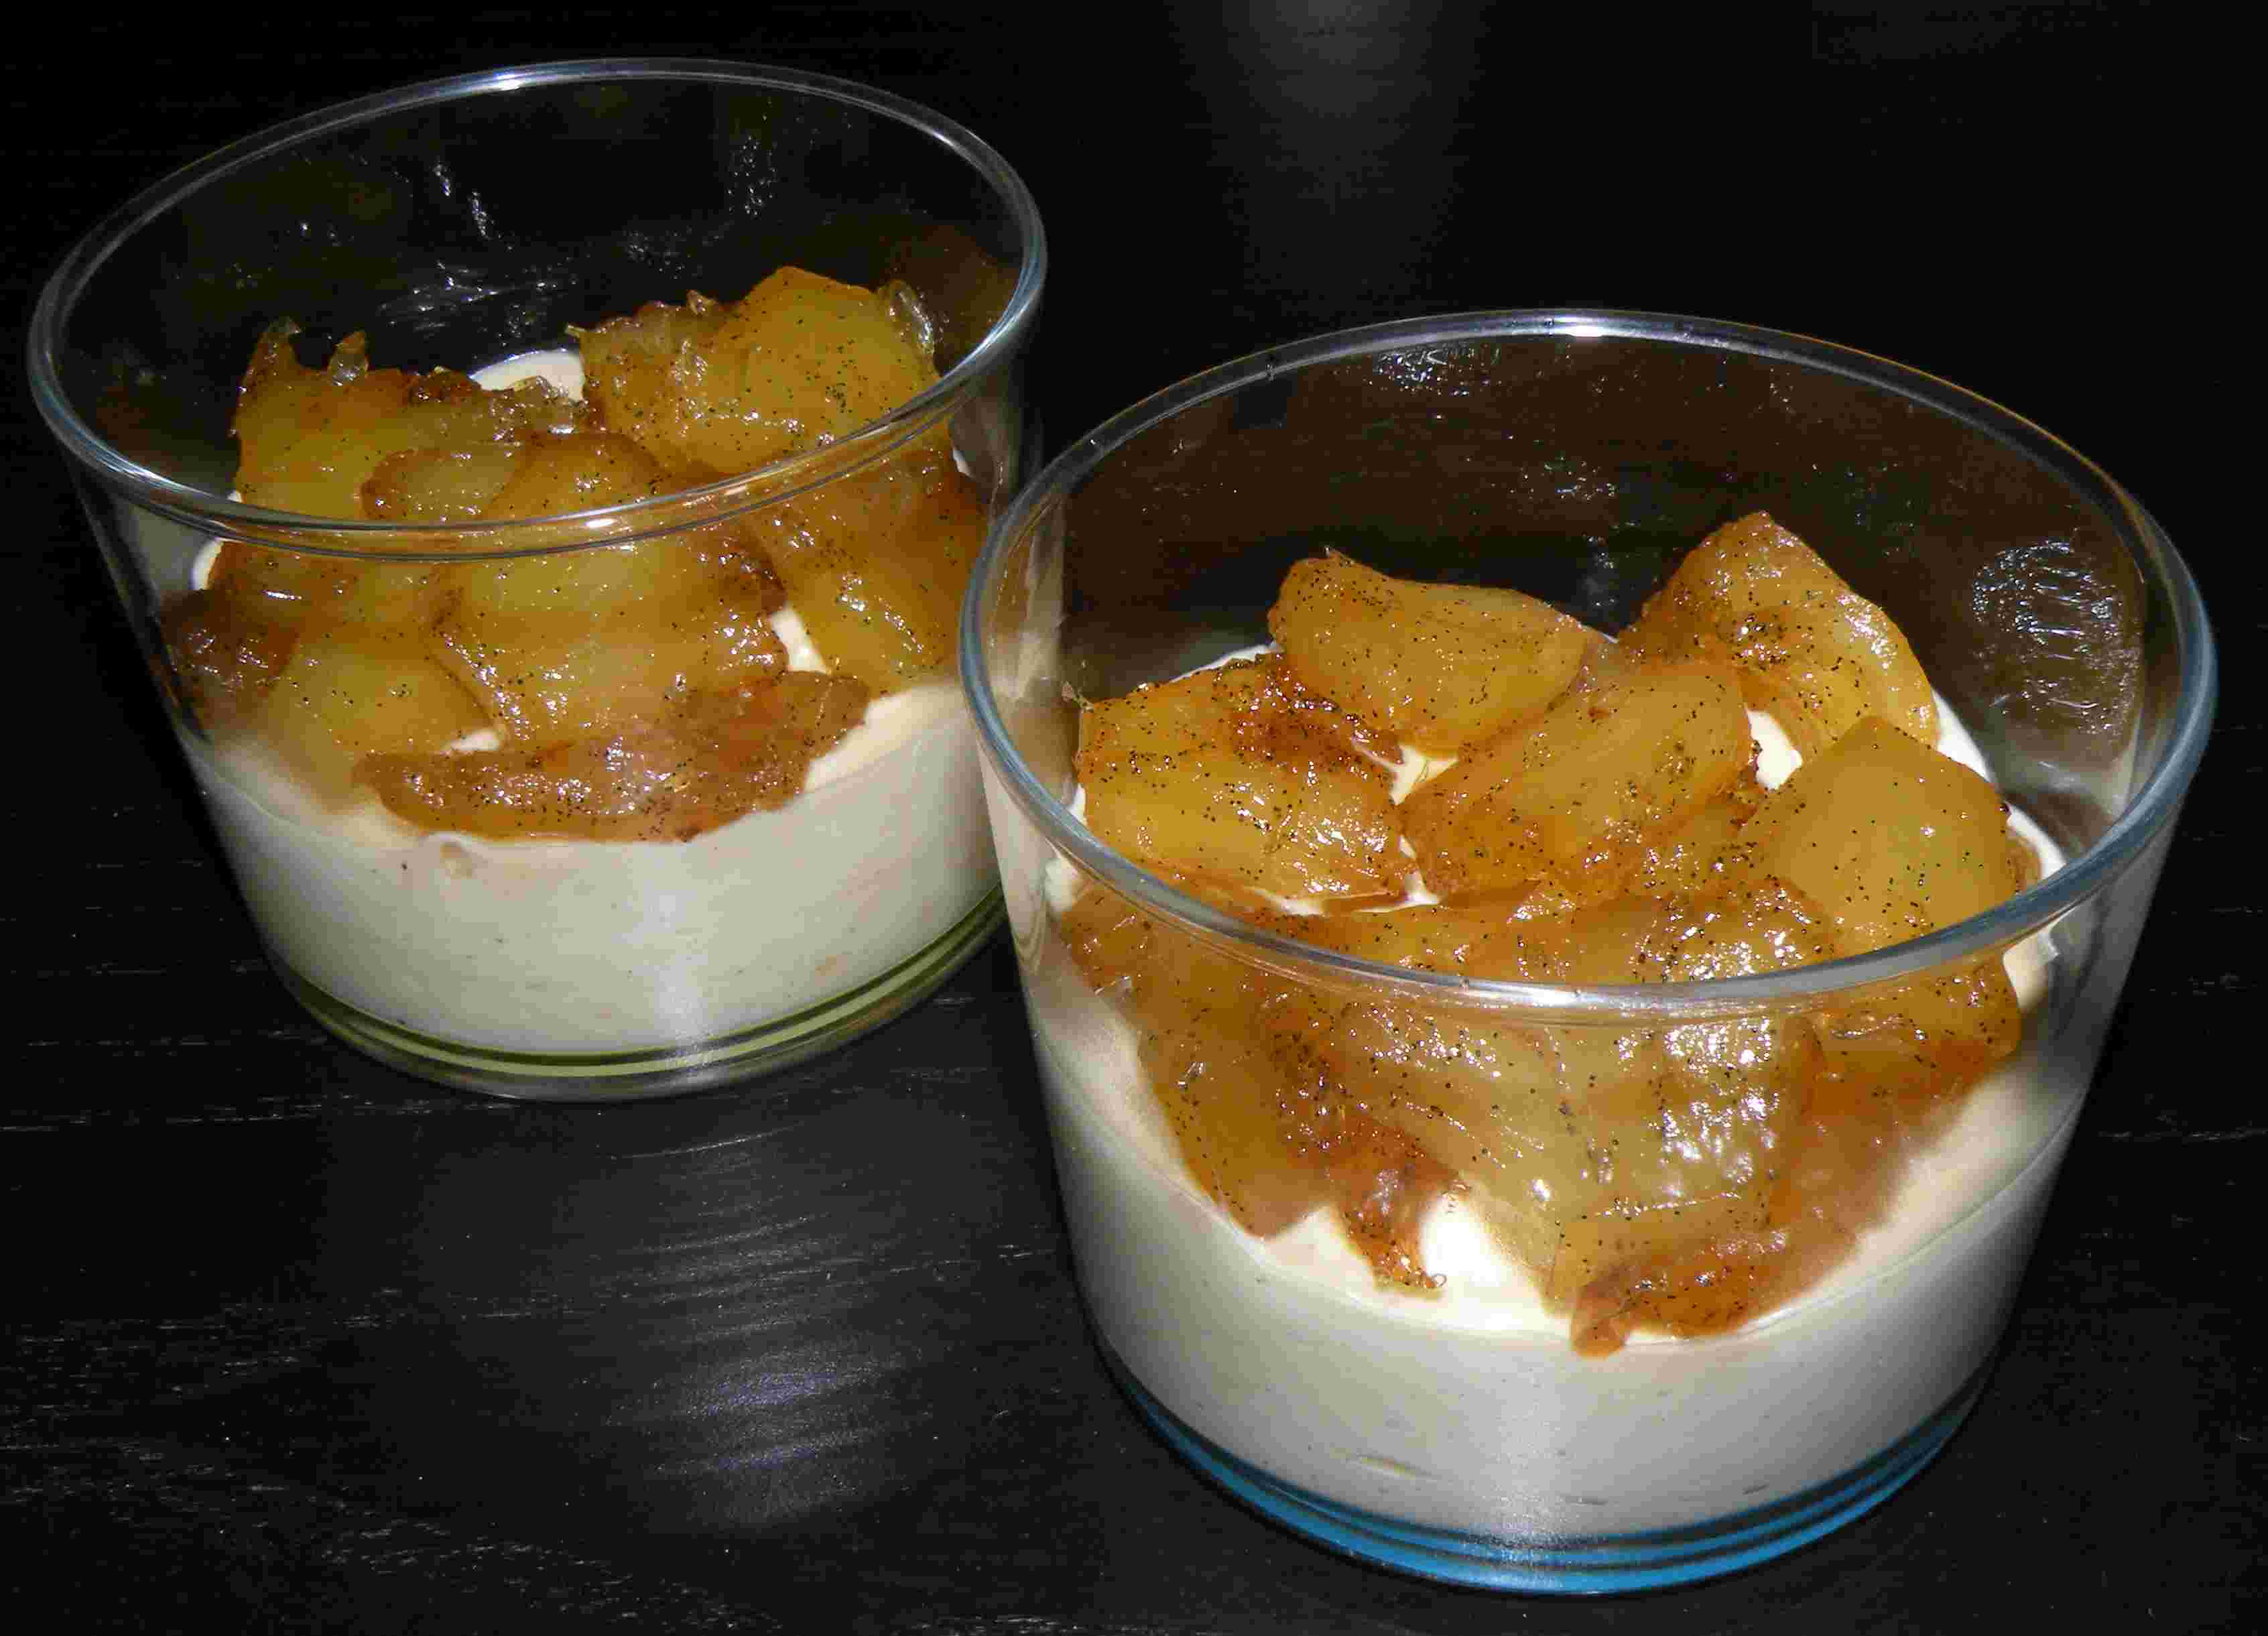 Verrines d ananas confit miel vanille et mascarpone pour 6 for What to do with mascarpone